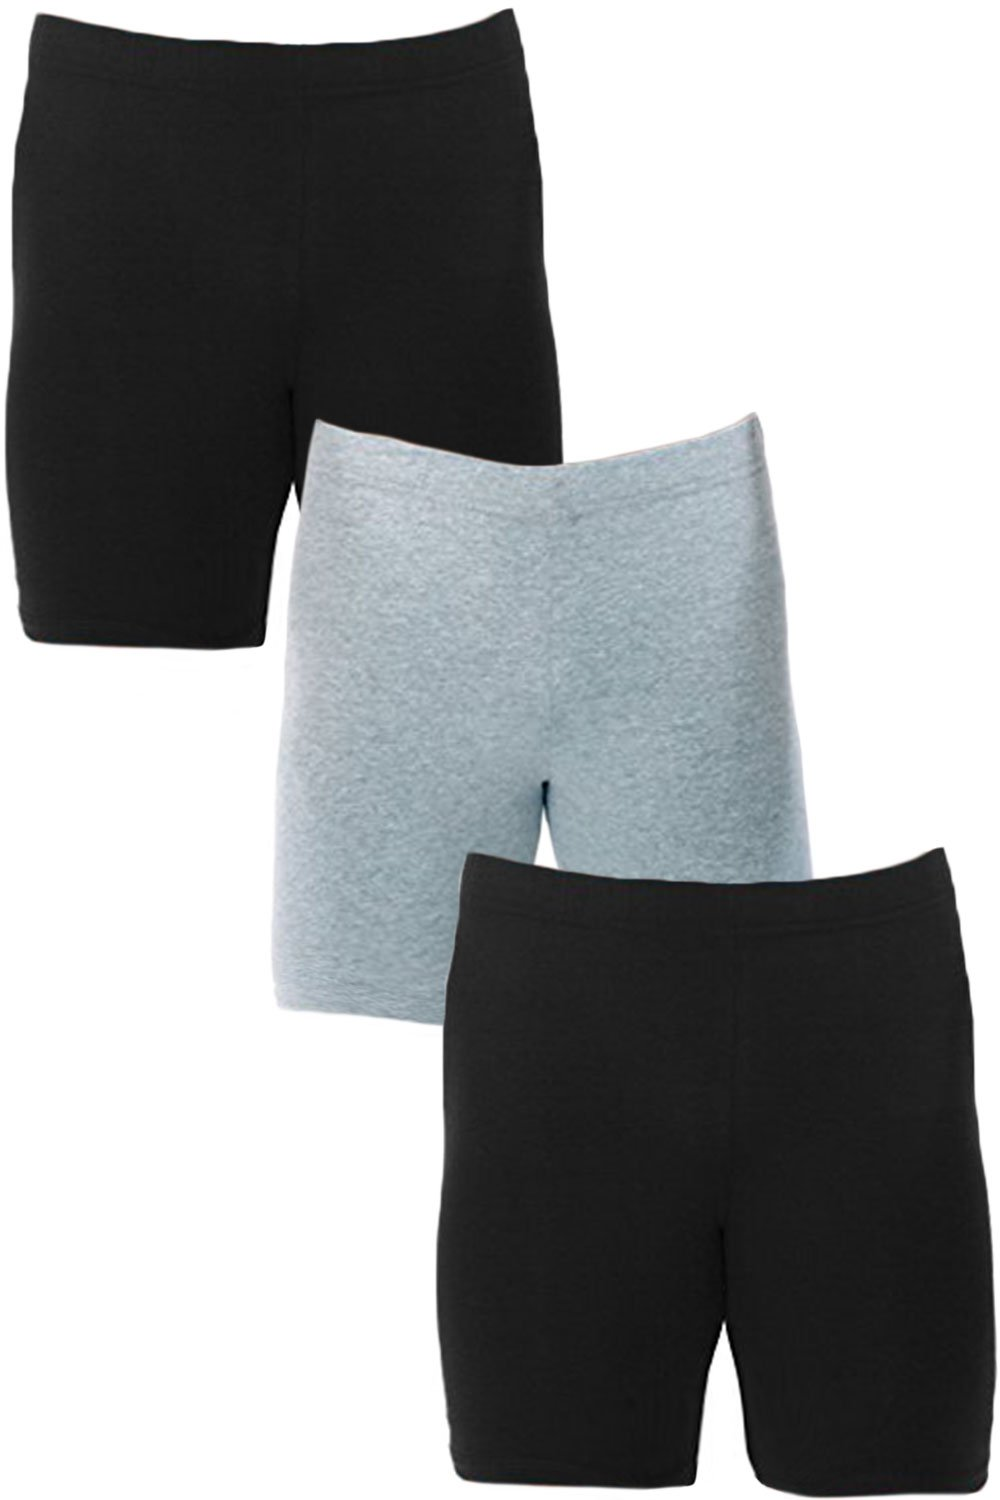 Men's Extreme Core-Champion True Double Dry Compression Short (Small, 3 Pack Black/Black/Grey)